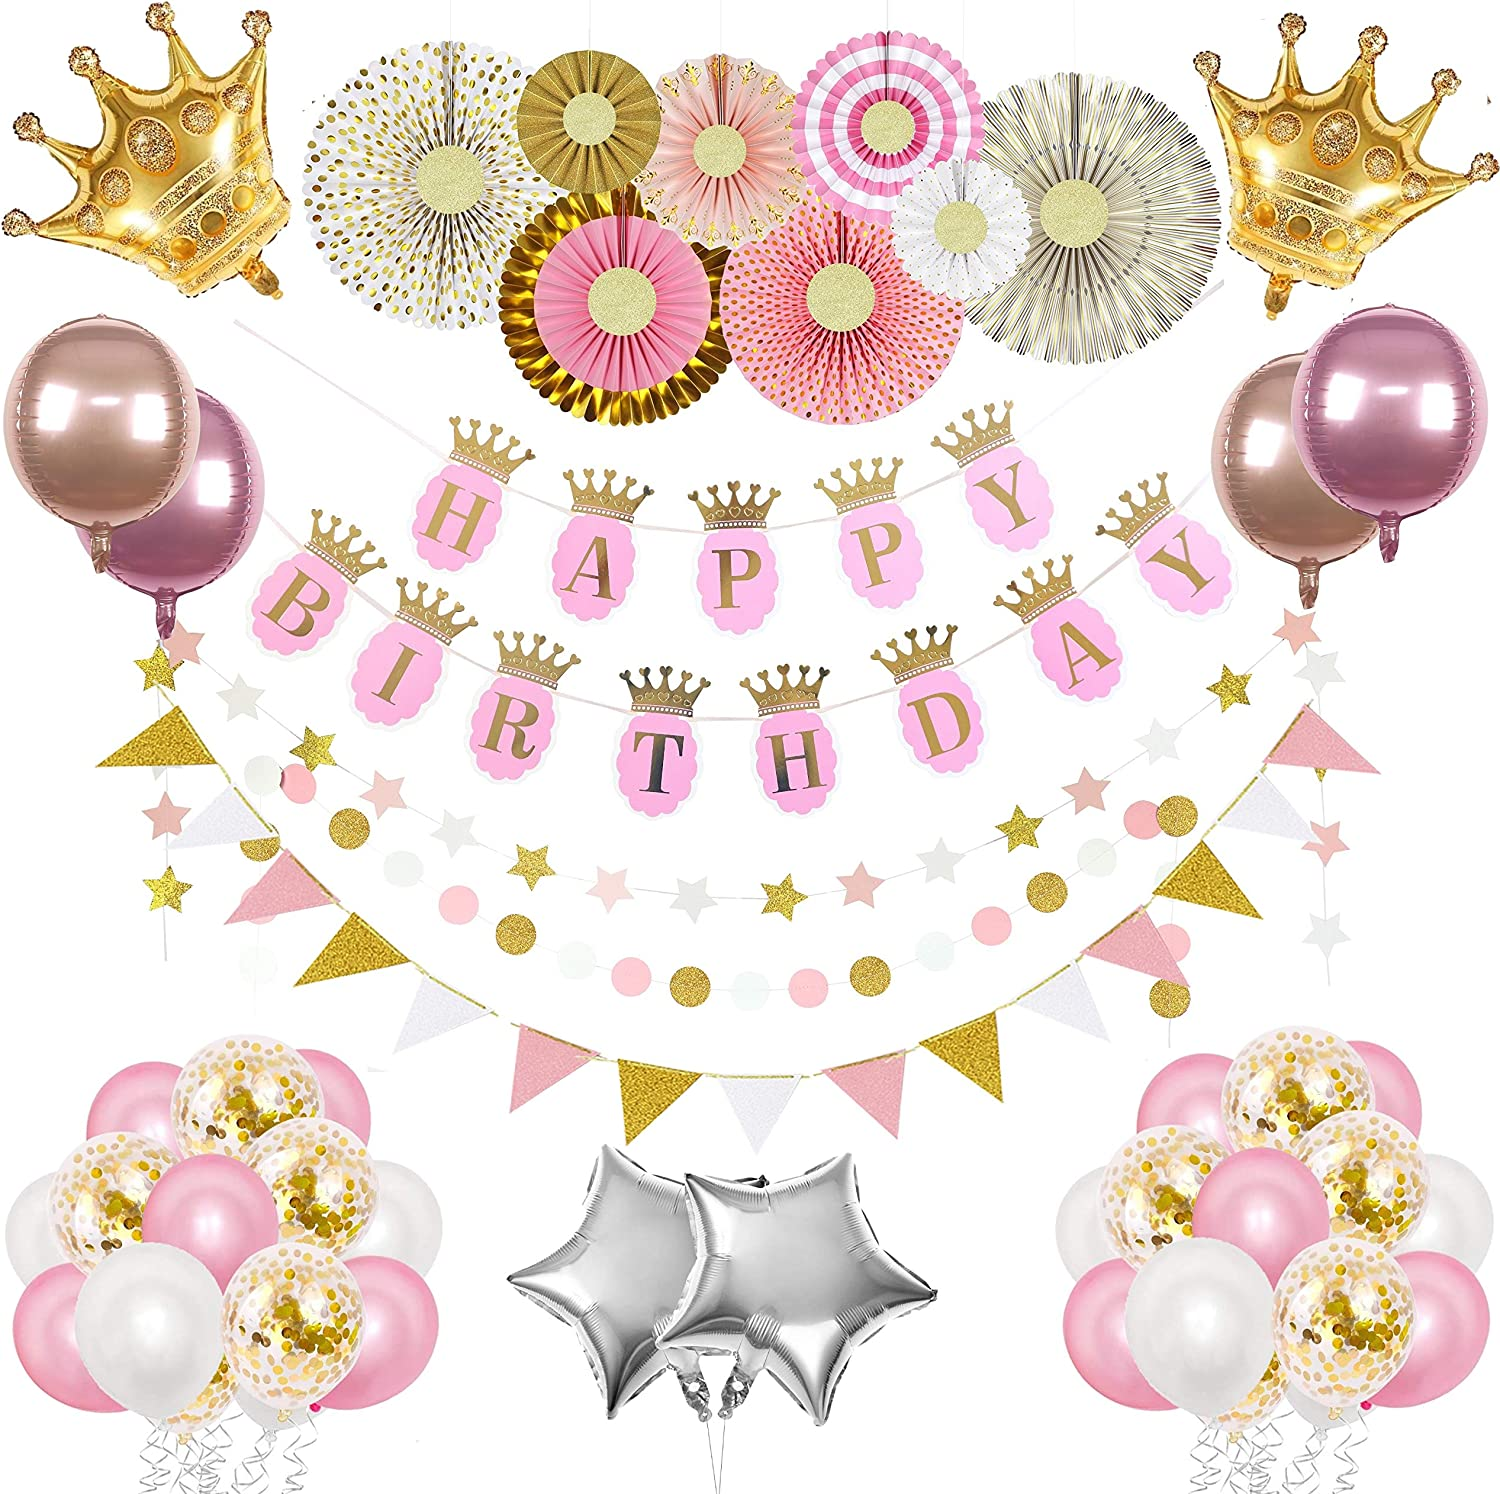 Princess Party Decoration Bundles